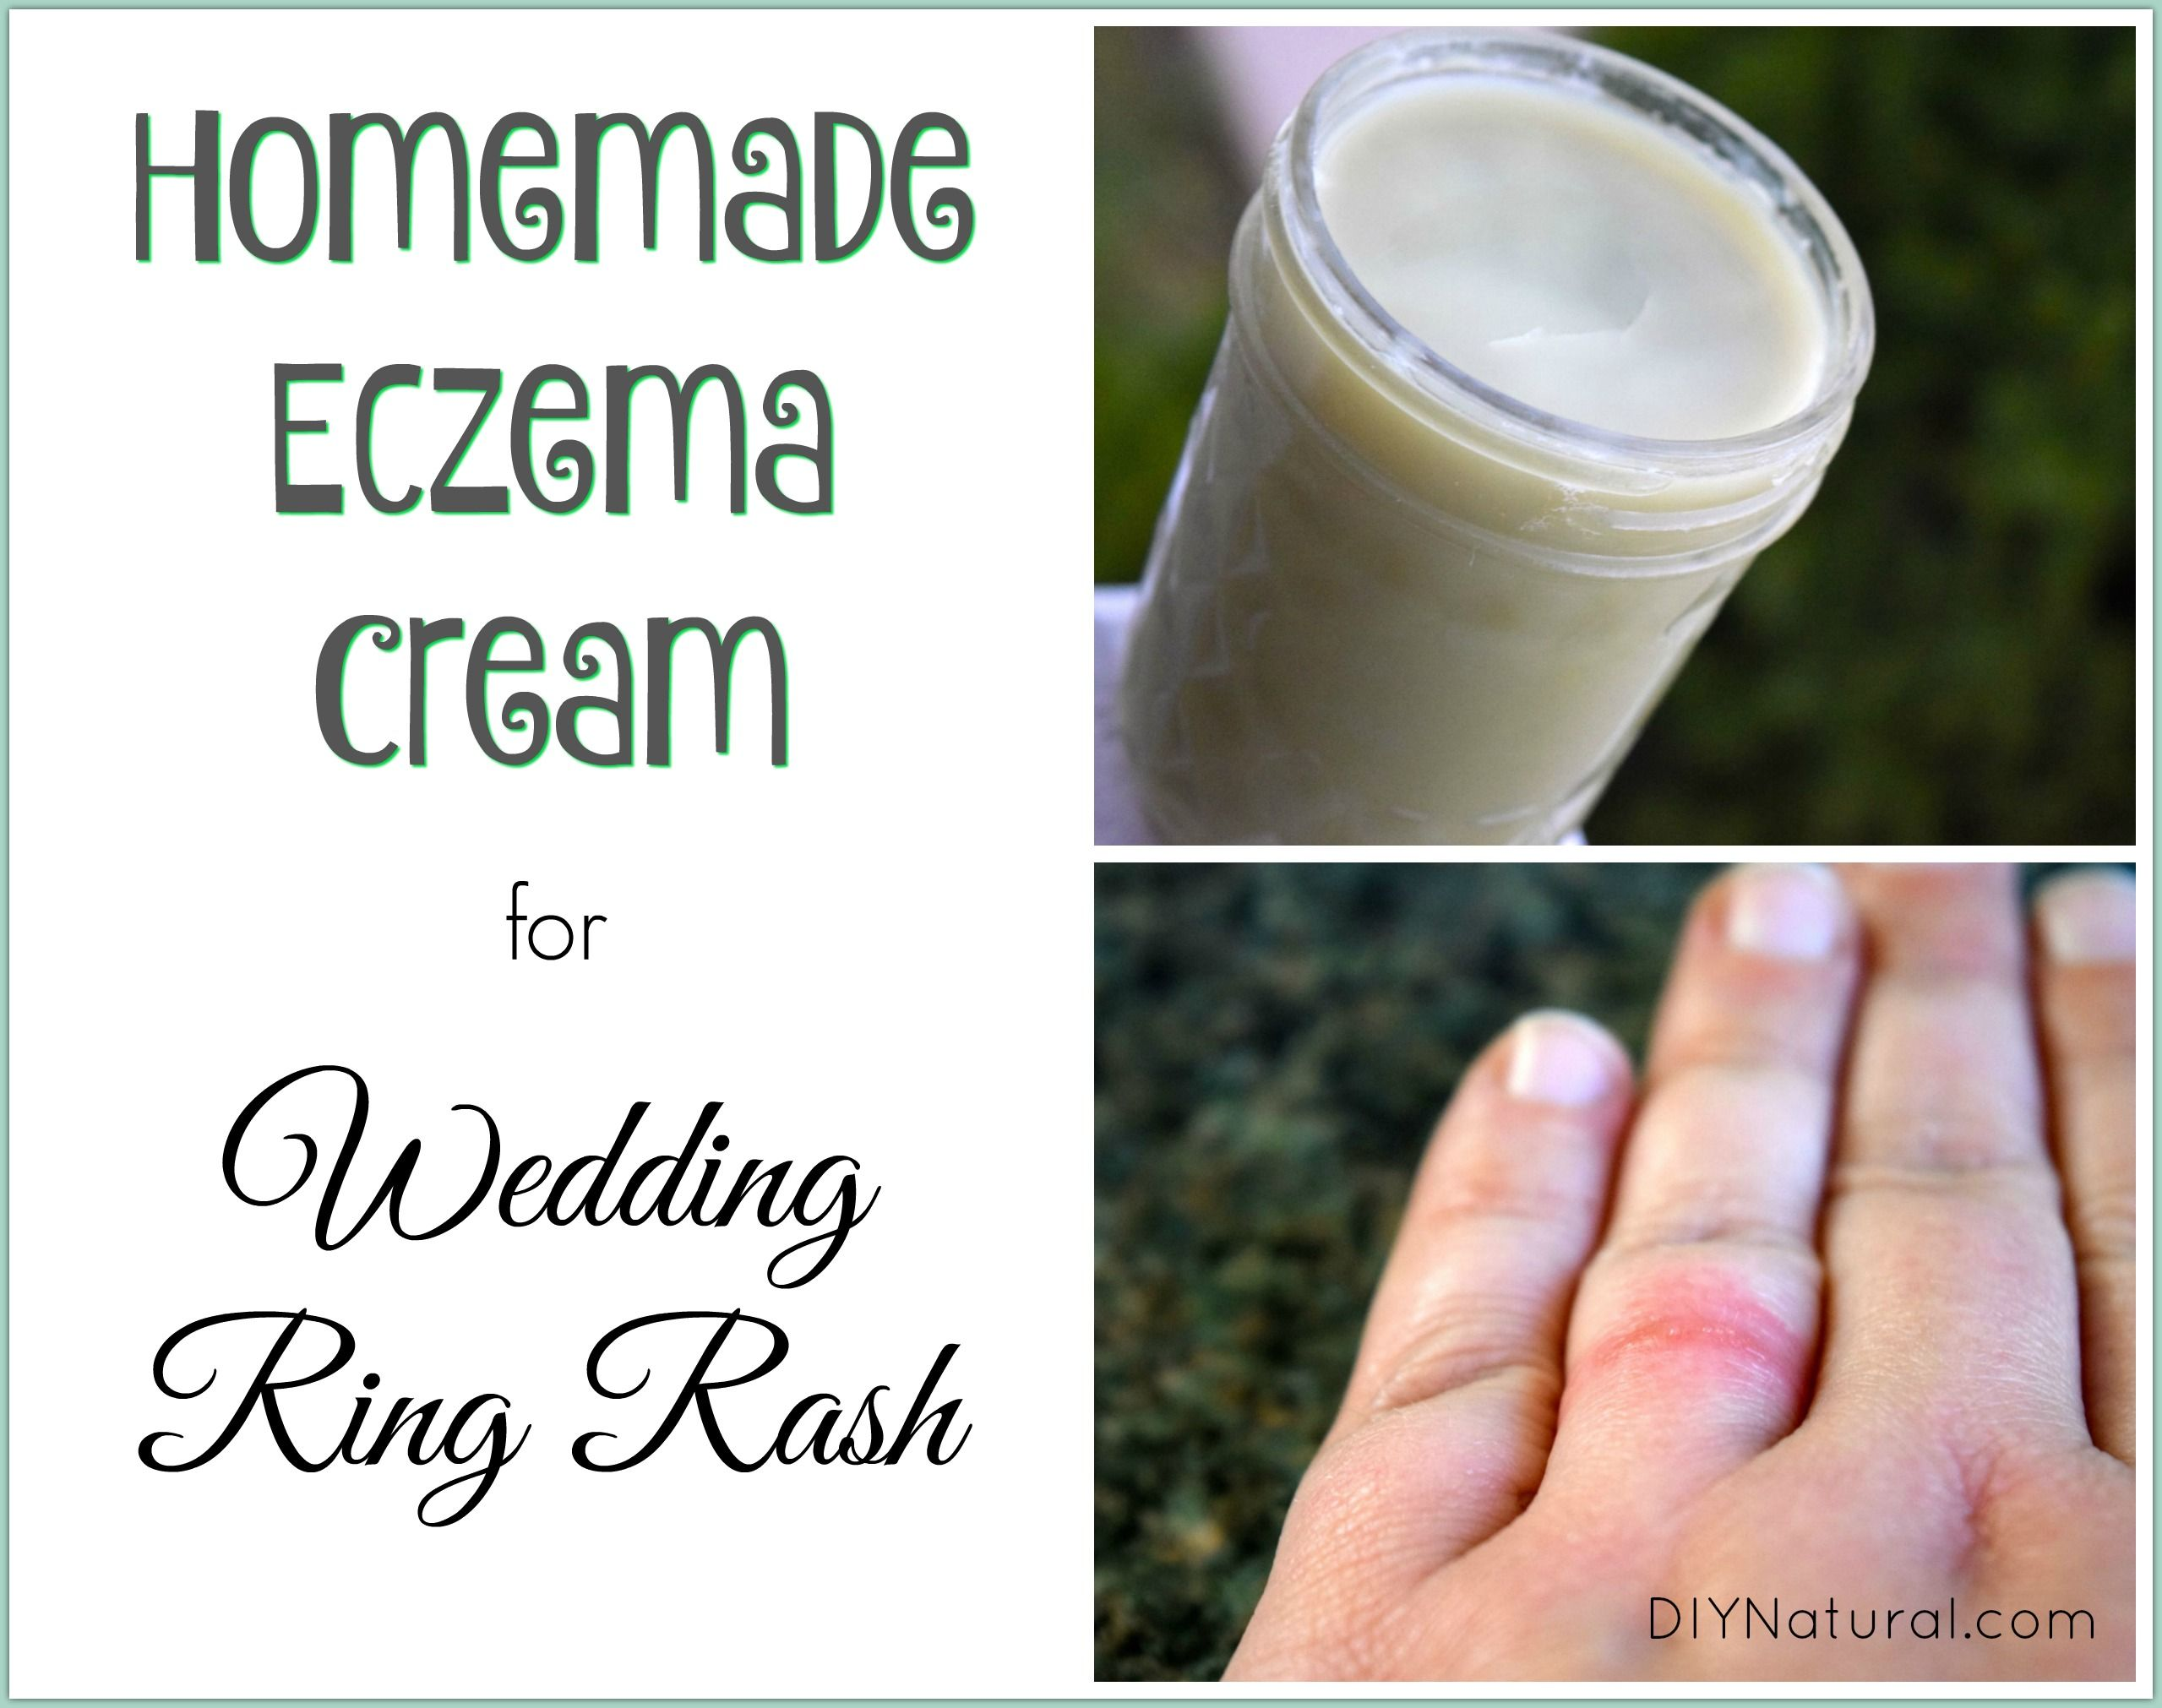 Wedding Ring Rash A Homemade Cream That Relieves And Heals Eczema Cream Wedding Ring Rash Psoriasis Treatment Cream